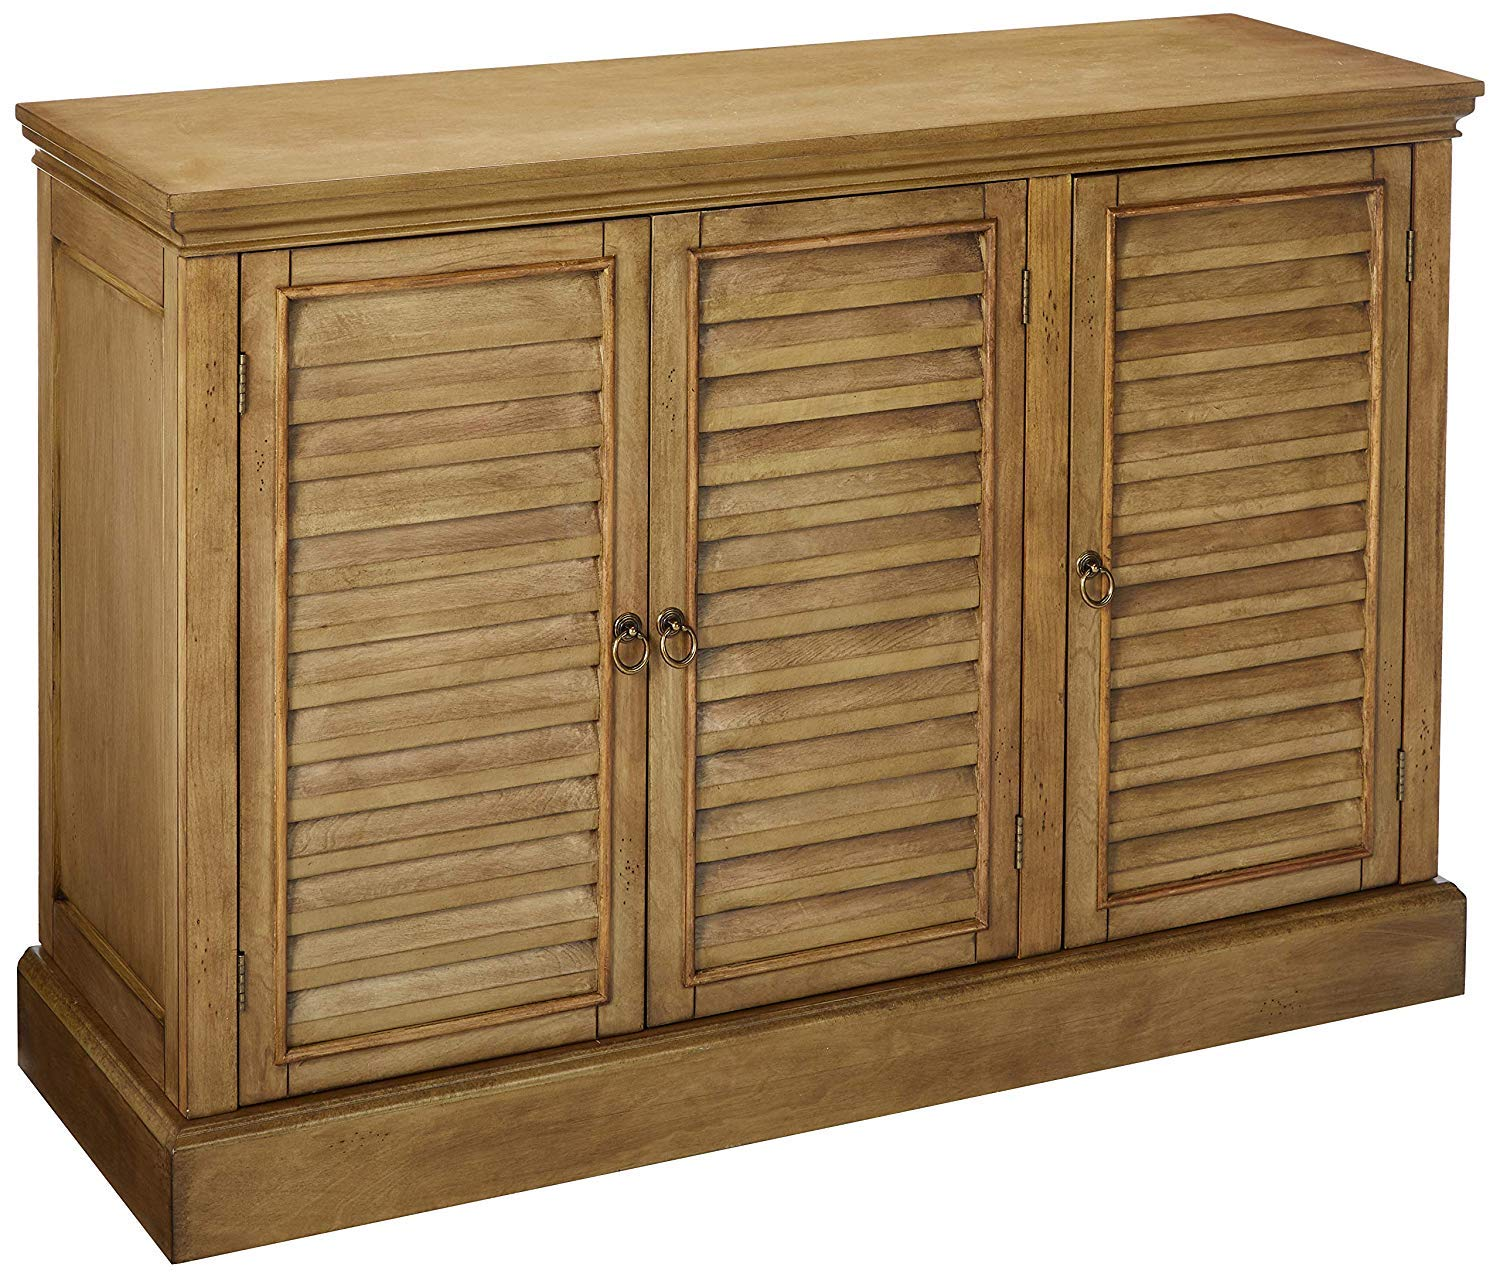 Rustic wood buffet/sideboard with shuttered doors. #sideboards #diningroom #furniture